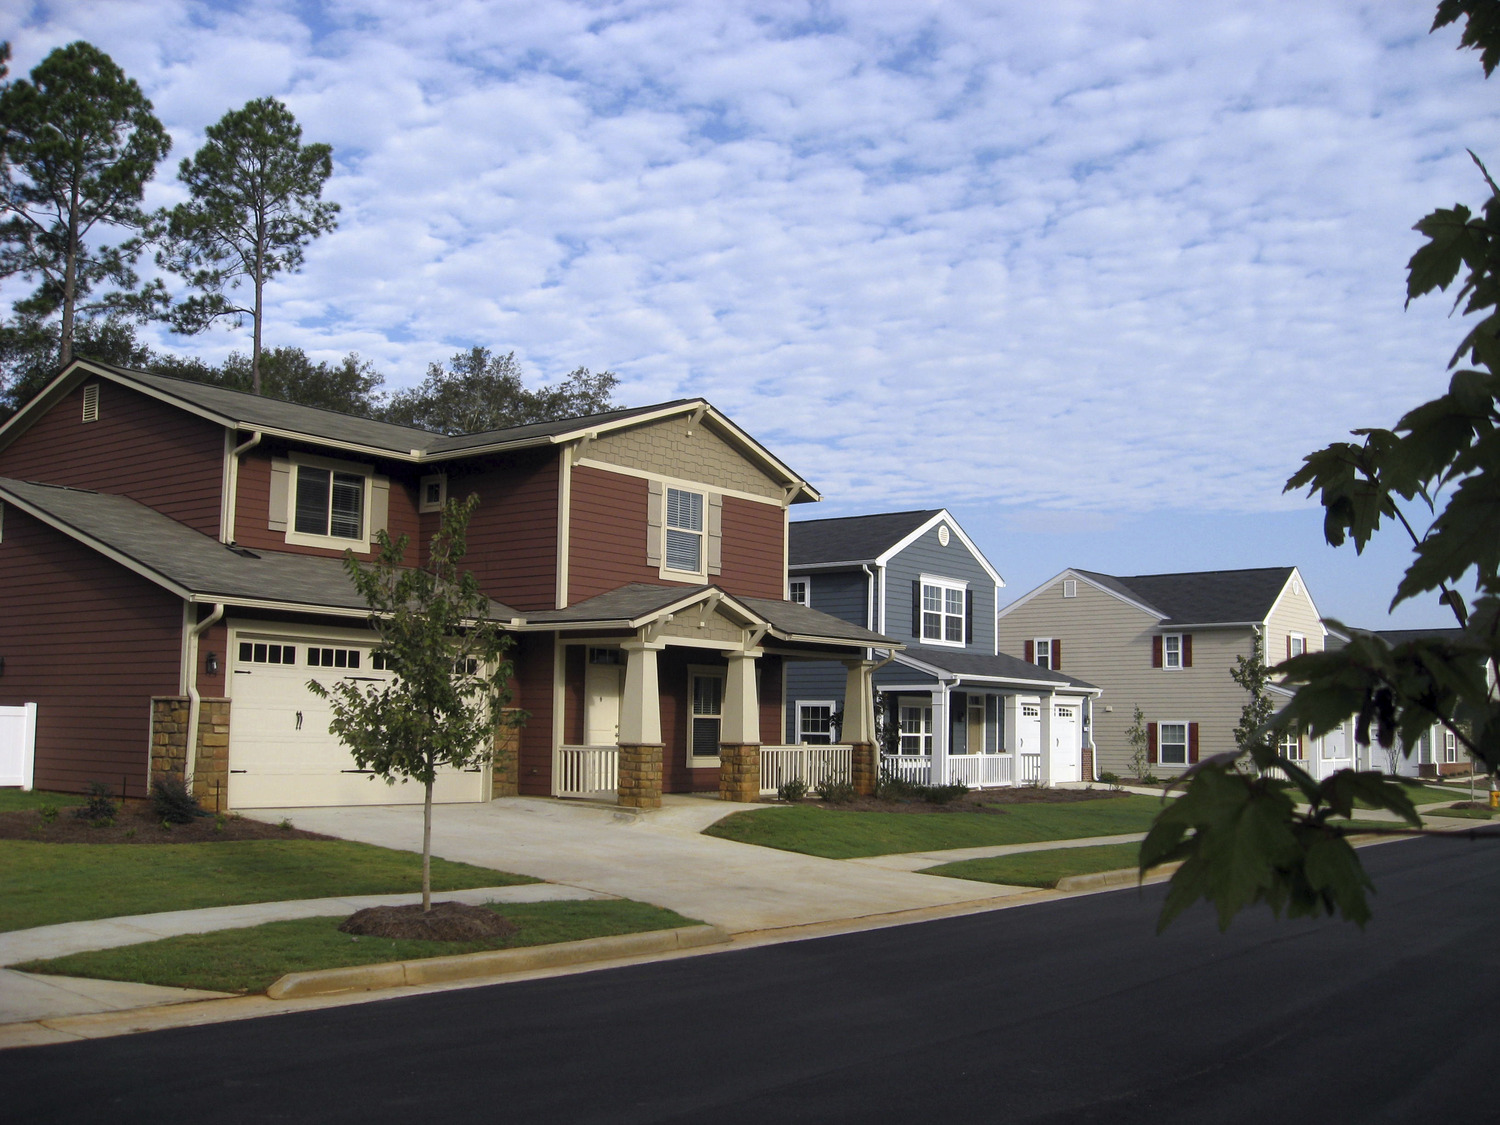 CBG builds MCLB Albany, a 110 Design-Build Duplex and Single-Family Homes in Albany, GA